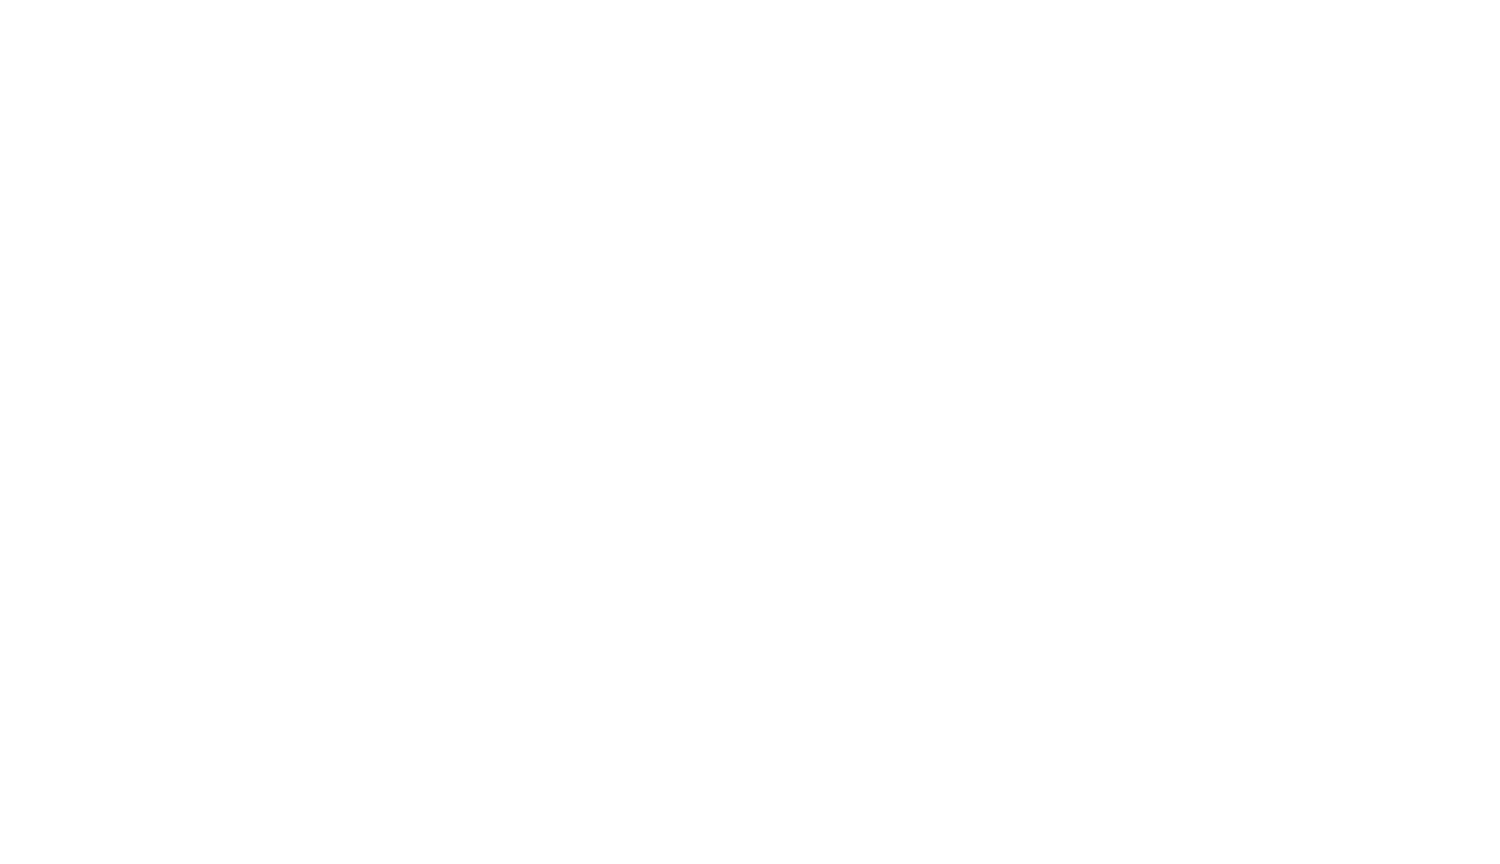 2 Dog Empire